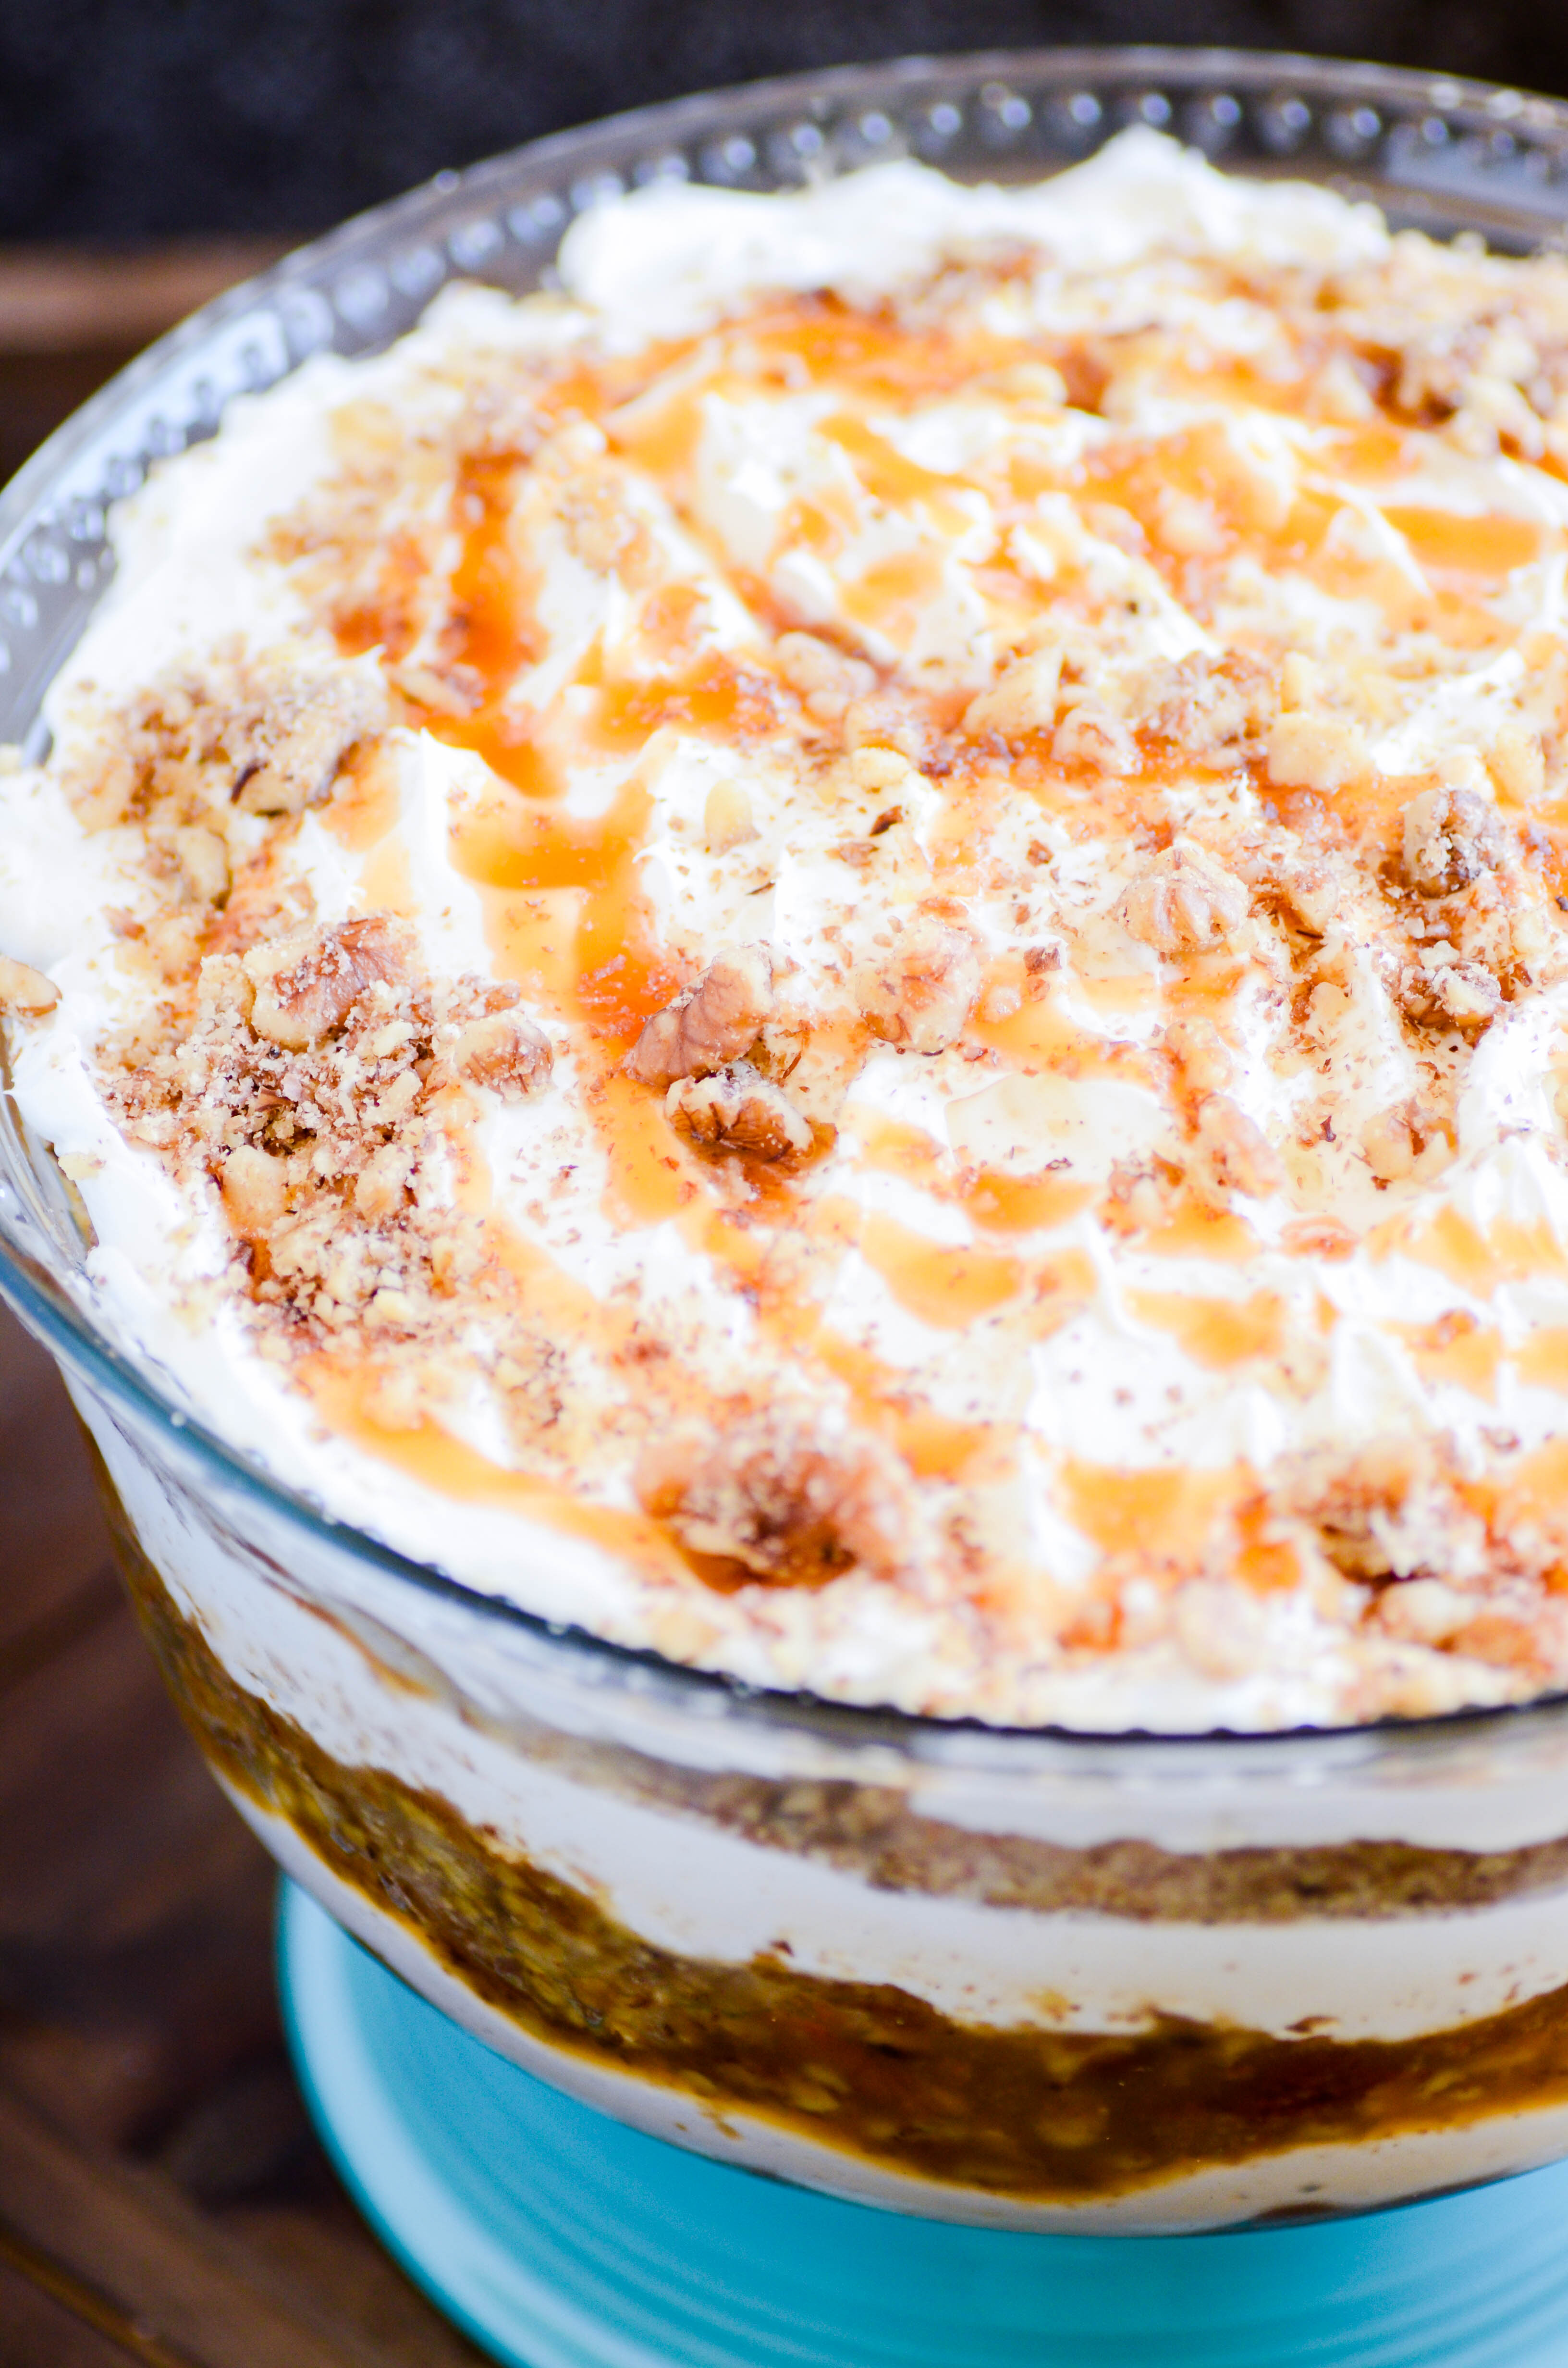 Layers of carrot cake, caramel sauce, and a cheesecake filling make this Carrot Cake Cheesecake Trifle unbeatable!